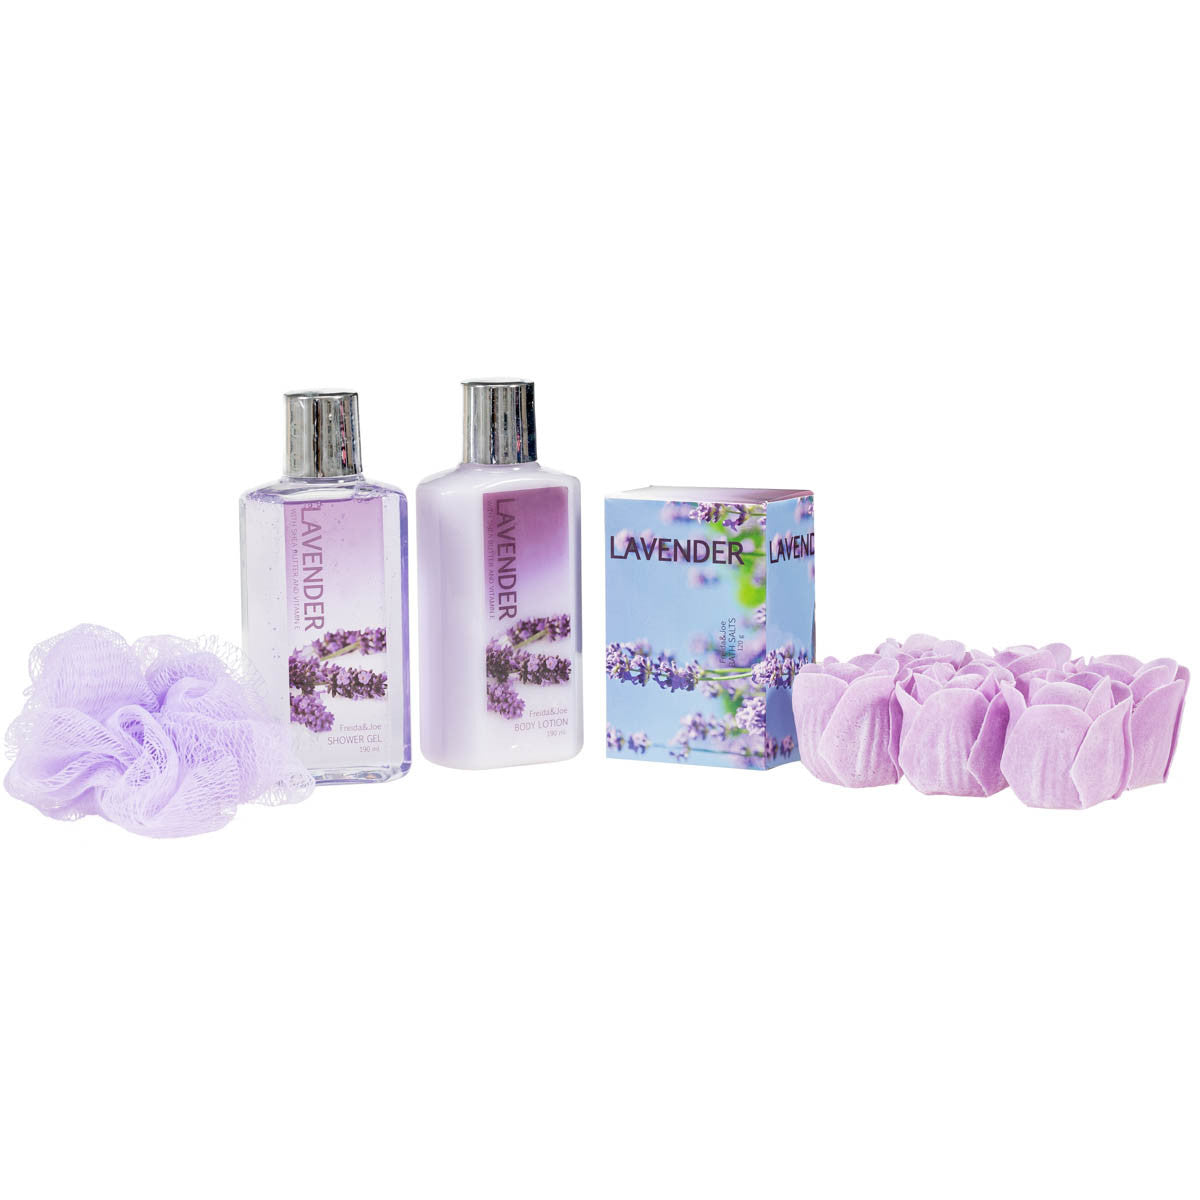 Lavender Spa Relaxation Kit With Body Lotion, Shower Gel, Bath Salts, & Rose Soaps. - Freida & Joe